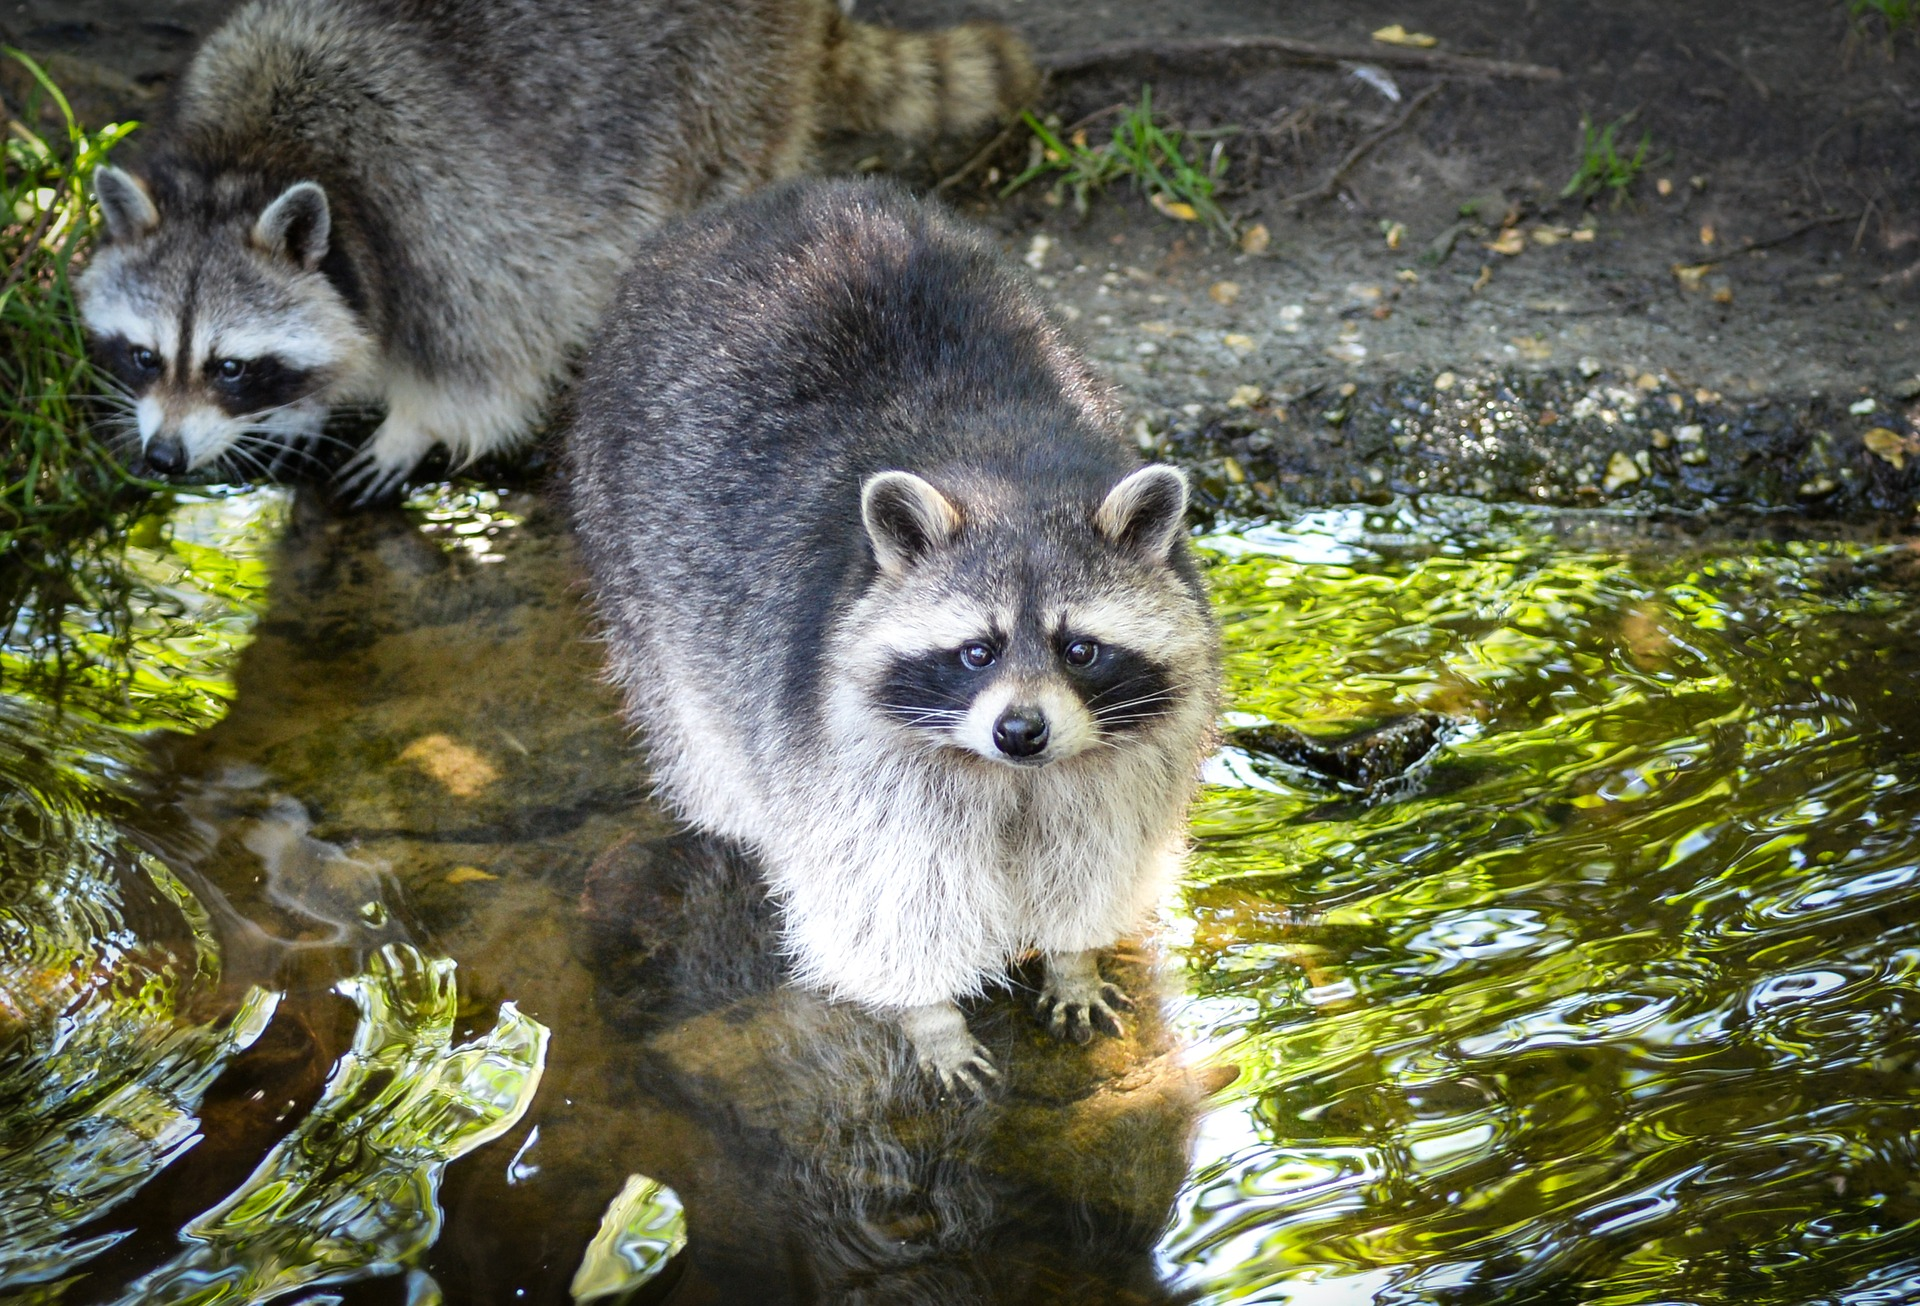 Removing and controlling raccoon issues in Cape Cod